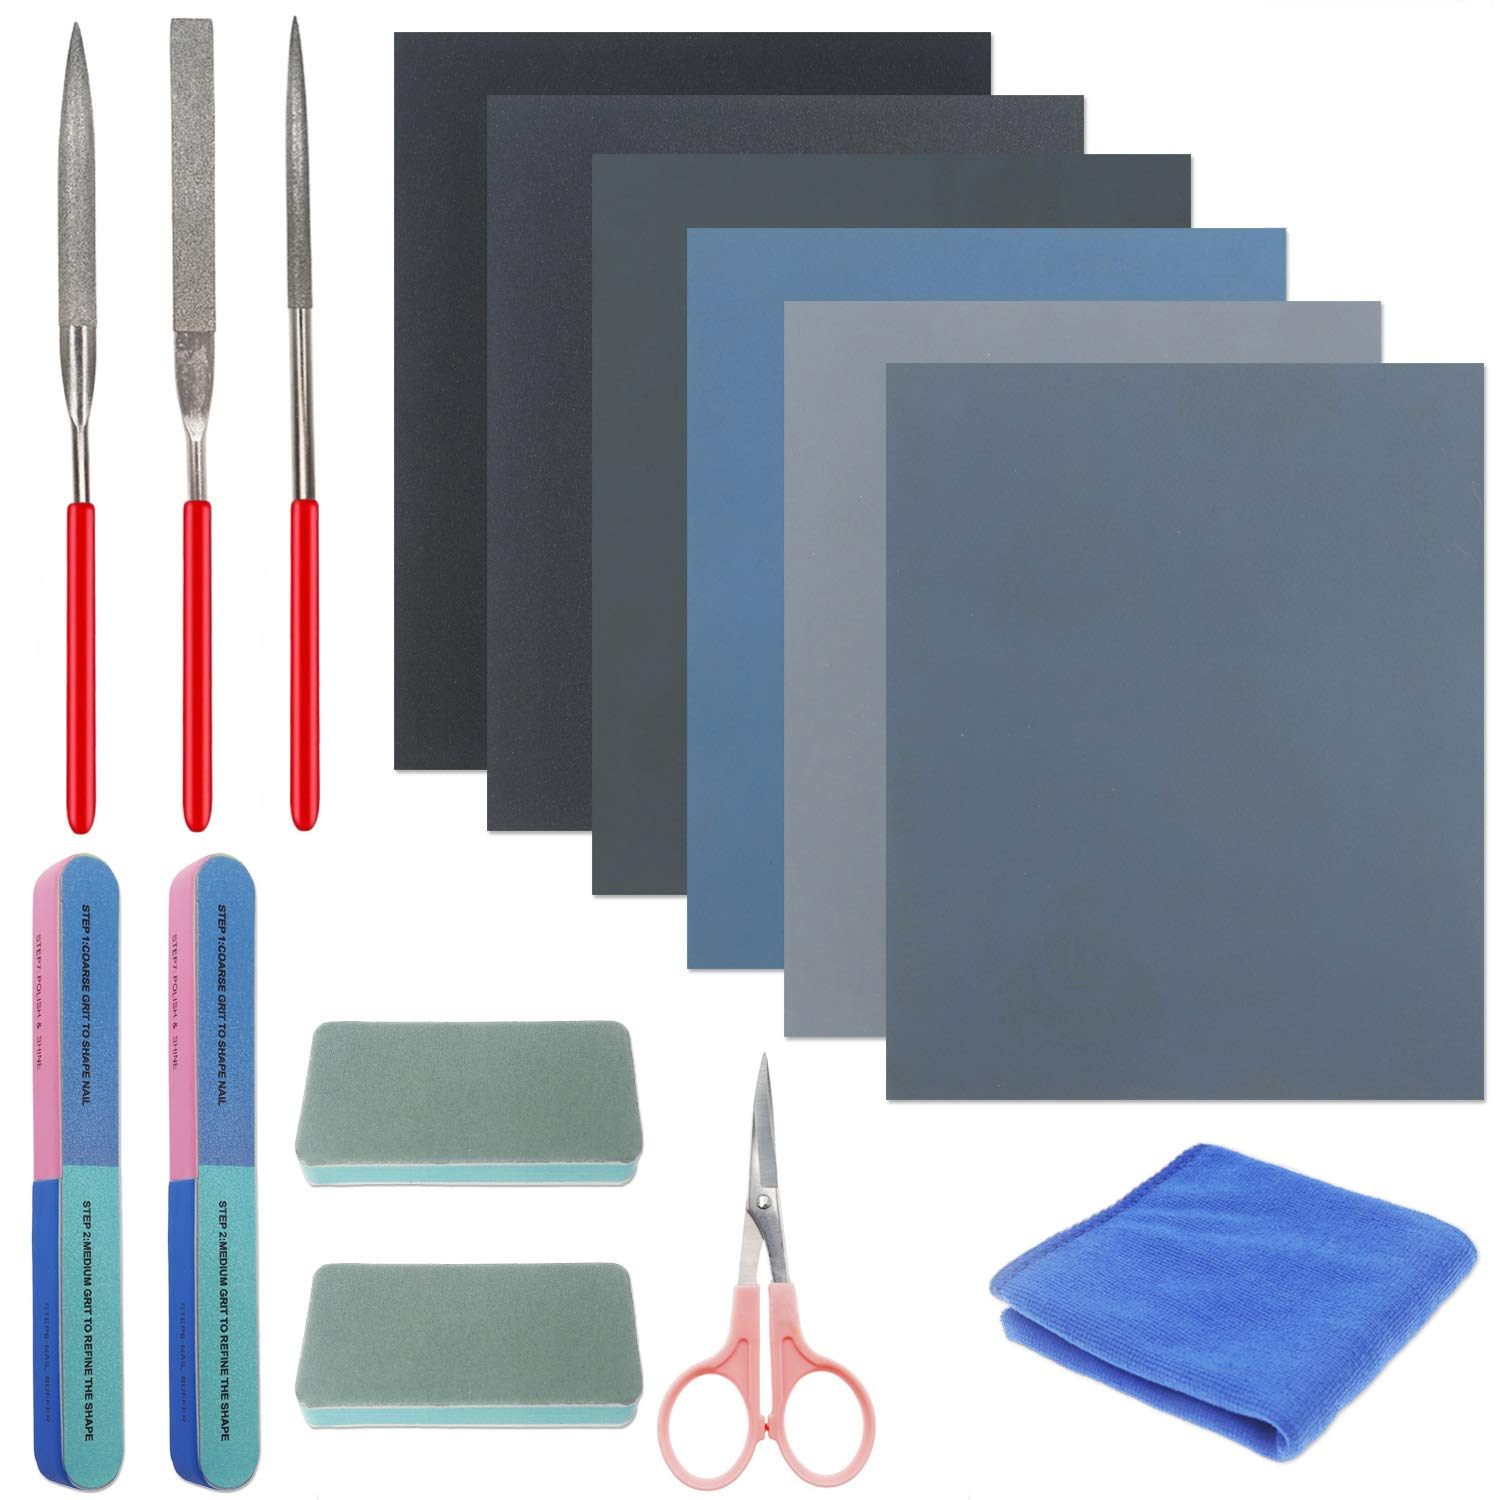 13 Pieces Resin Casting Tools Set - Include Sand Papers, Polishing Blocks, Polishing Cloth, Round File, Semicircular File, Flat File and Scissors for Polishing Epoxy Resin Jewelry Making Supplies